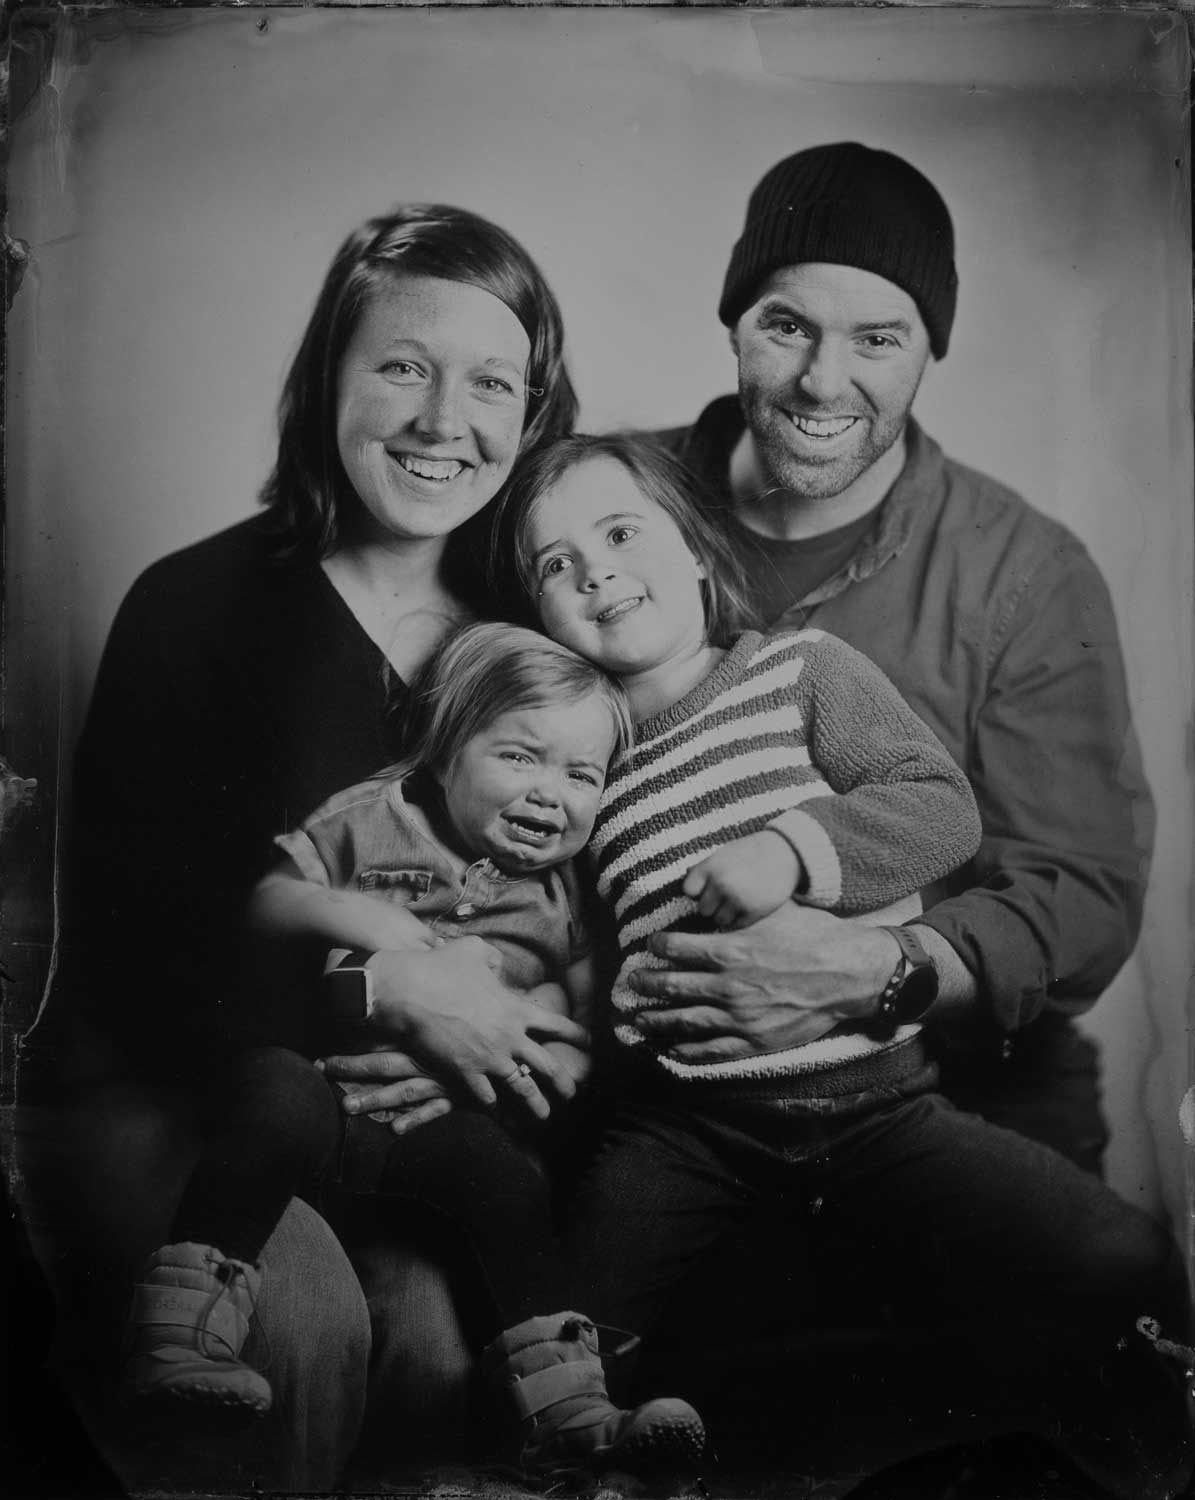 a family of 4 people in a tintype photo